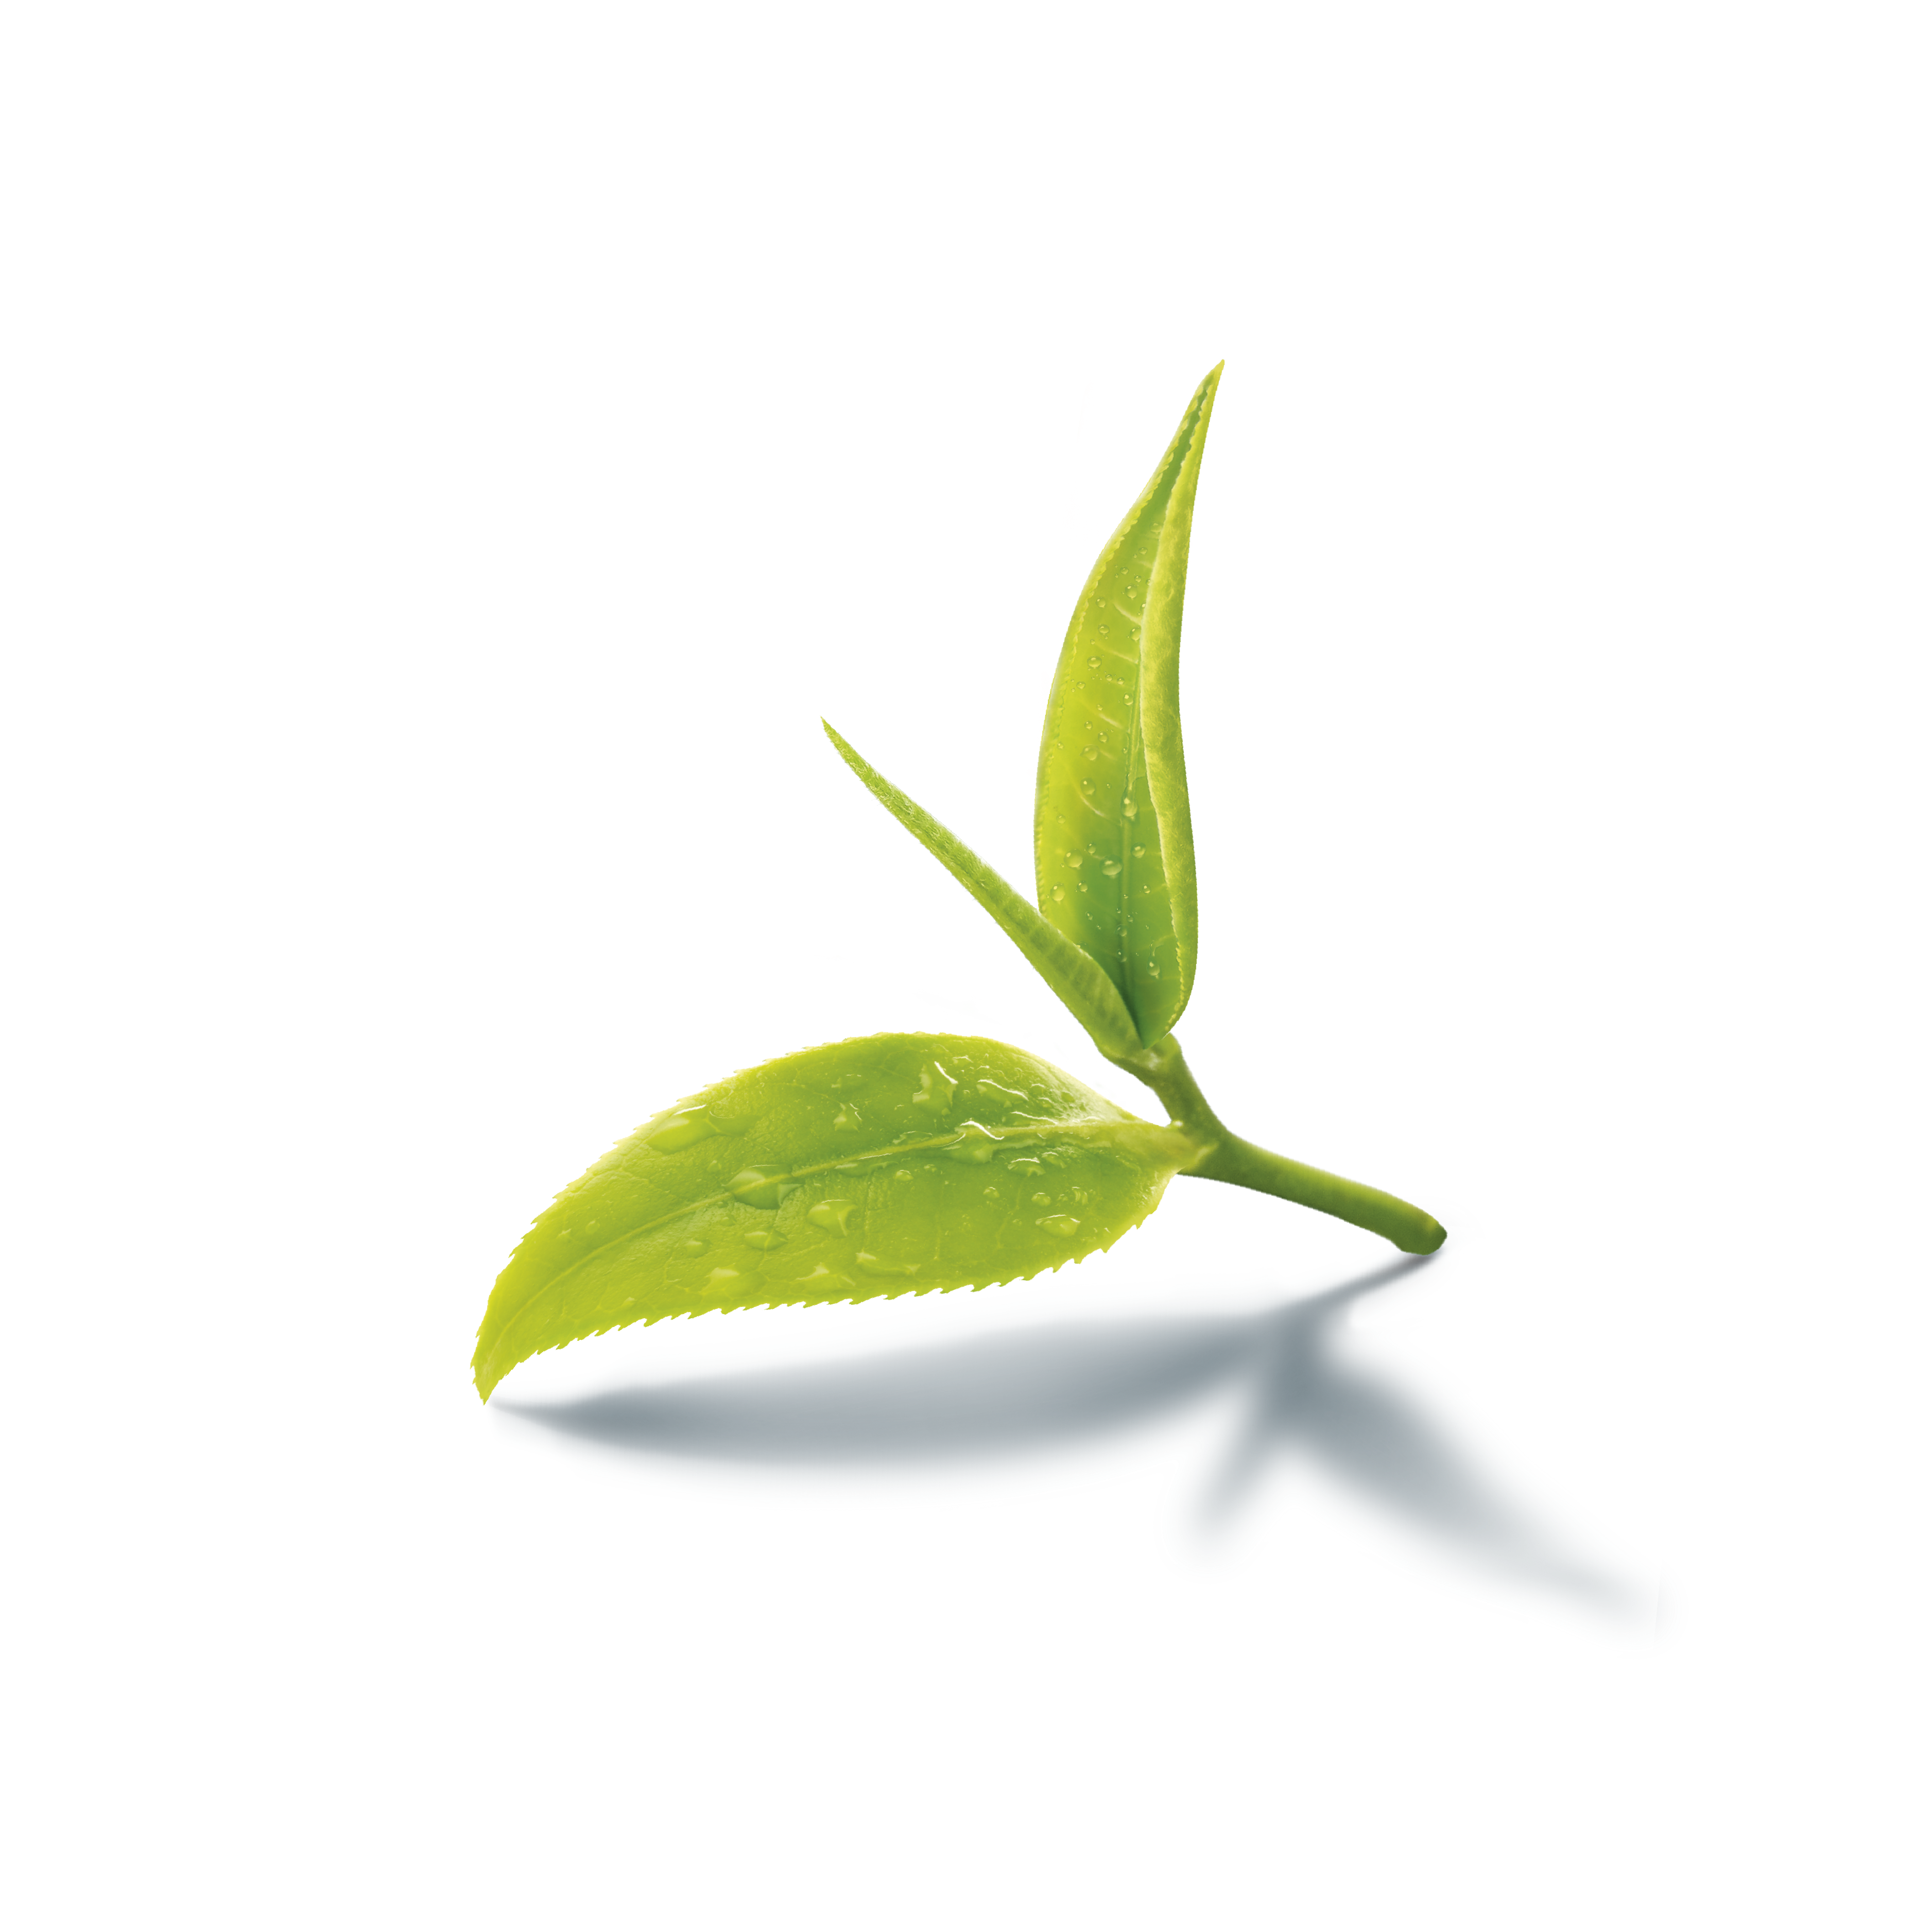 Green tea leaf png. Iced assam production in